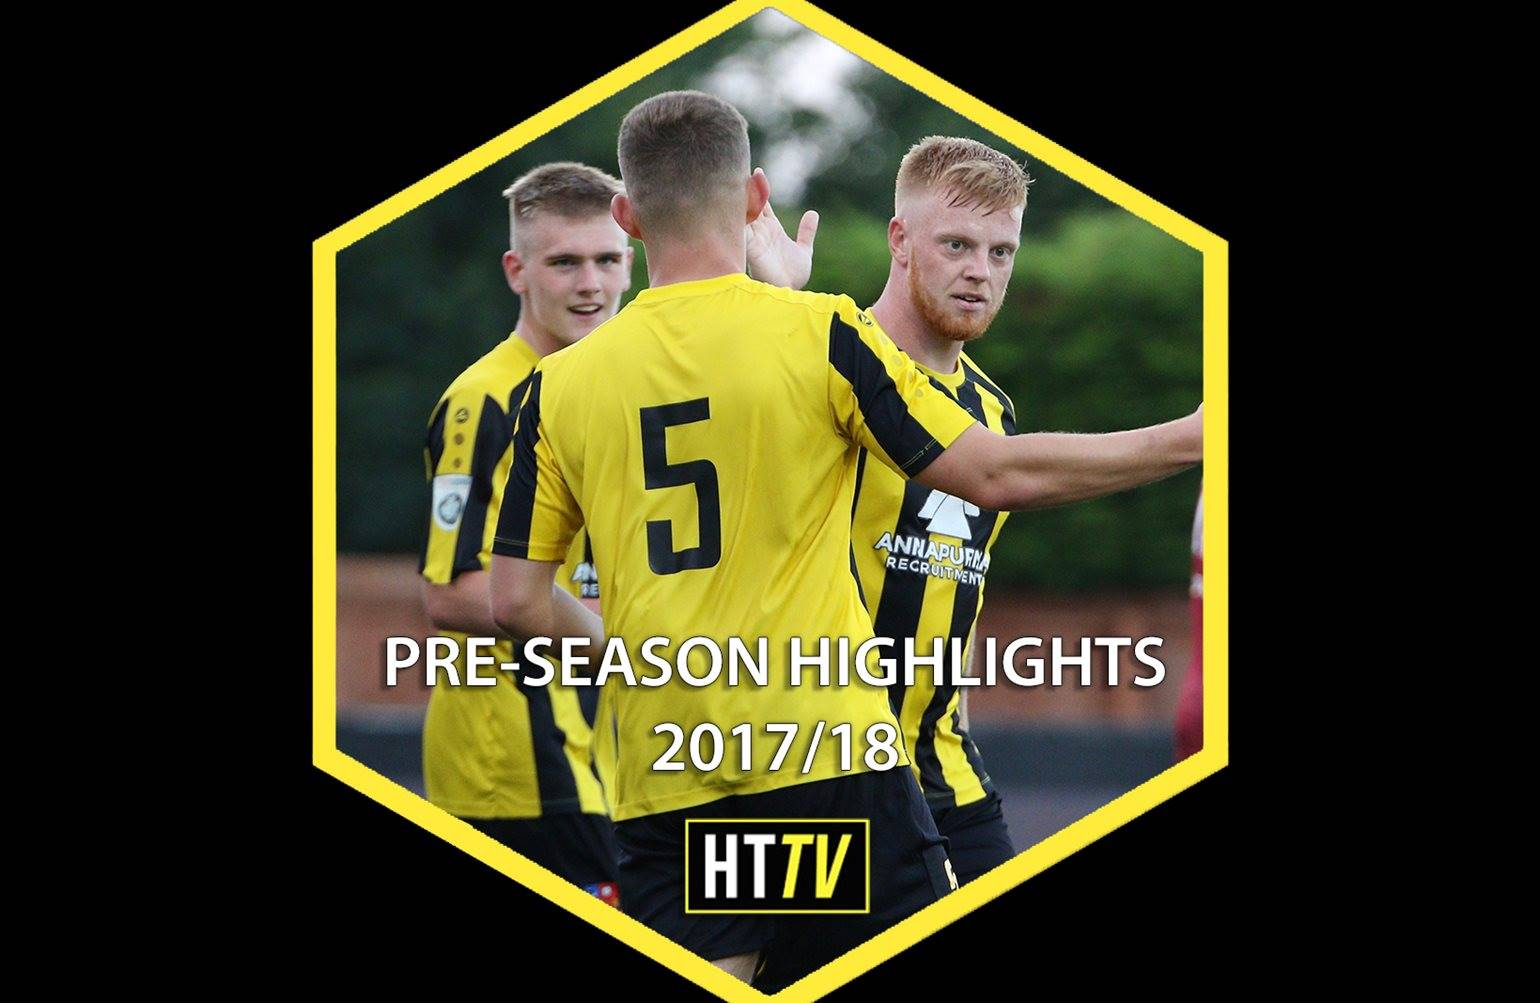 Harrogate Town Pre-Season Highlights 2017/18